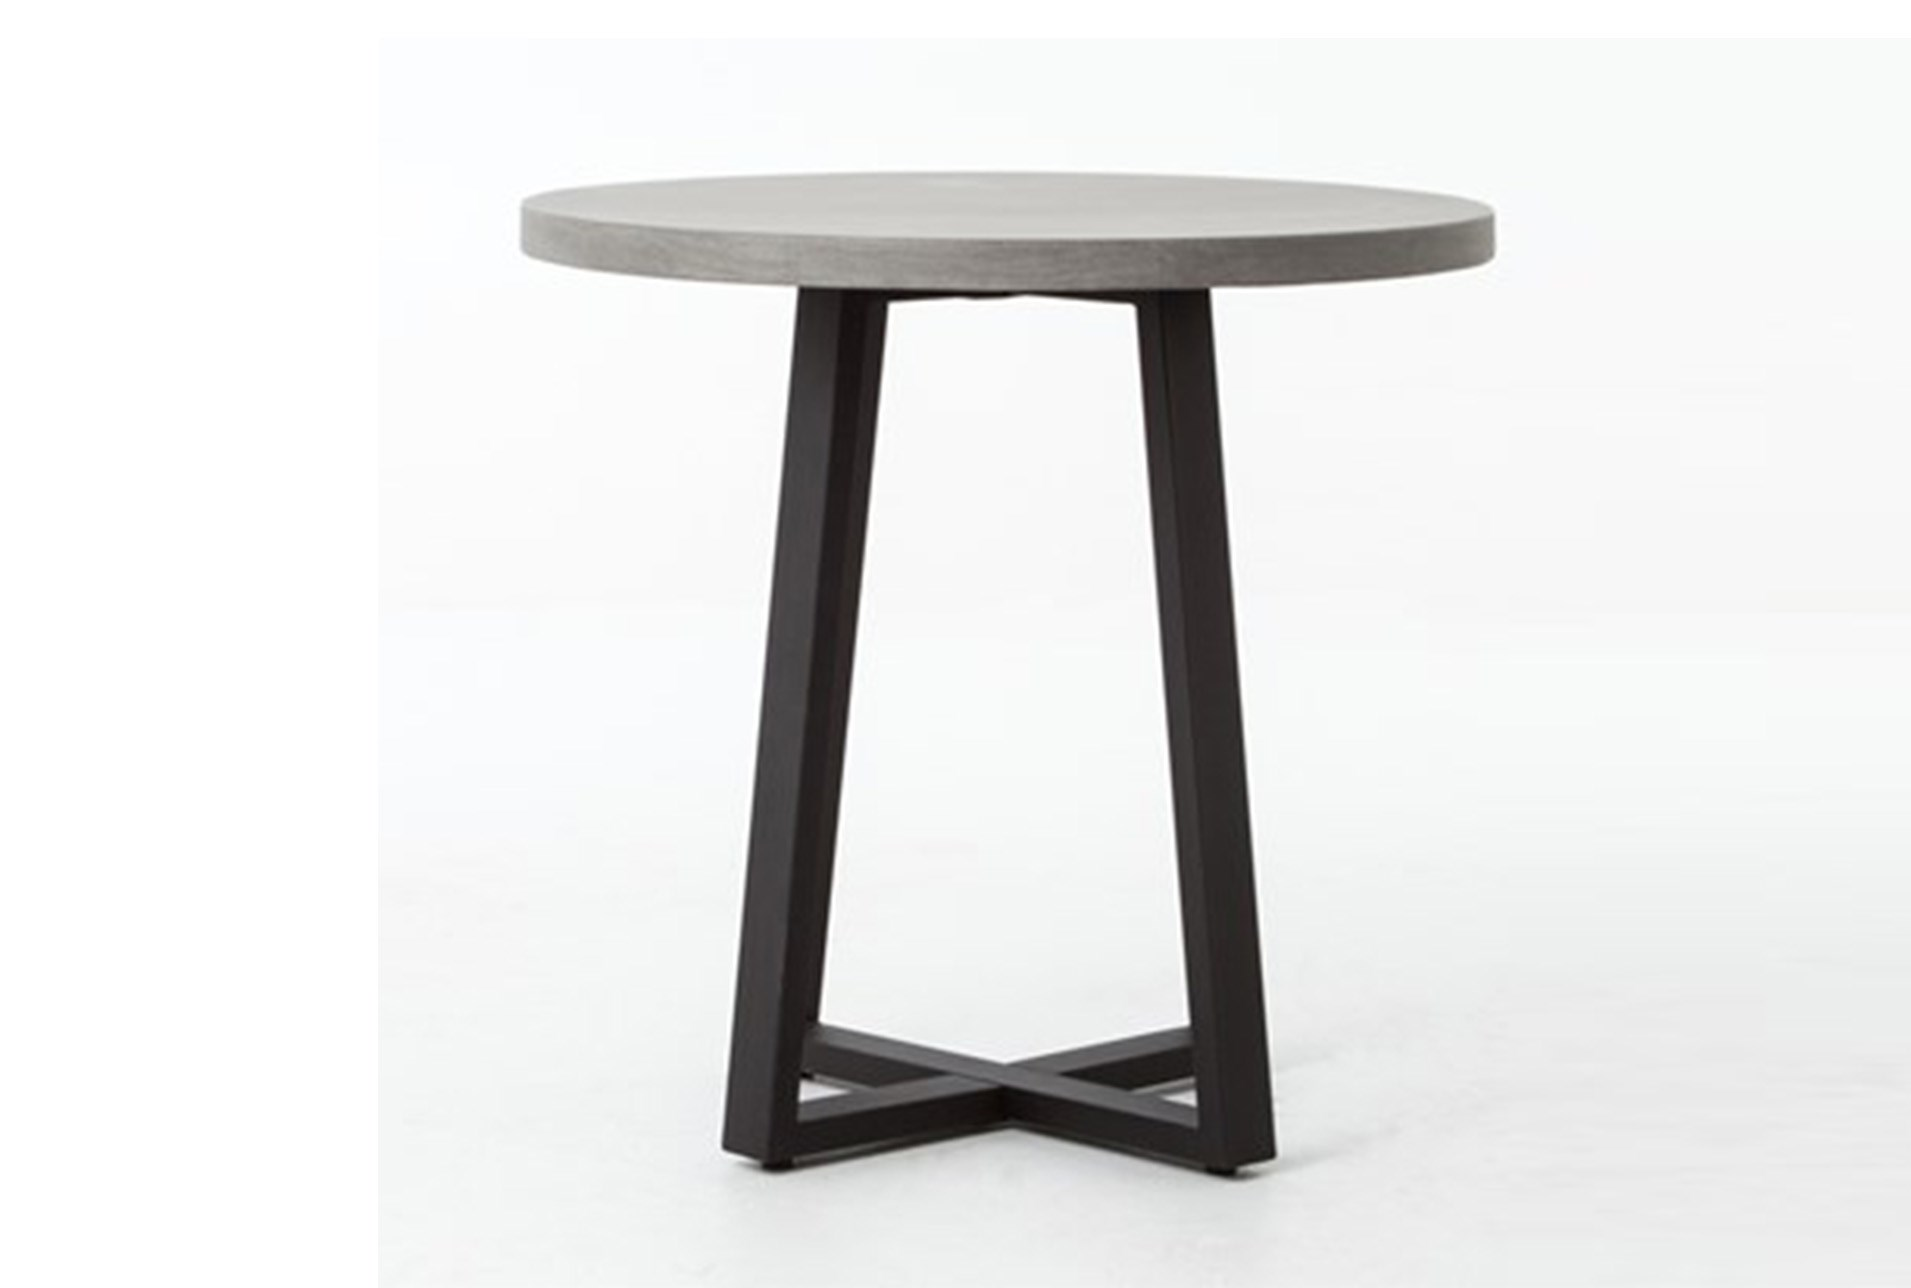 Parson 32 Inch Round Dining Table Qty 1 Has Been Successfully Added To Your Cart